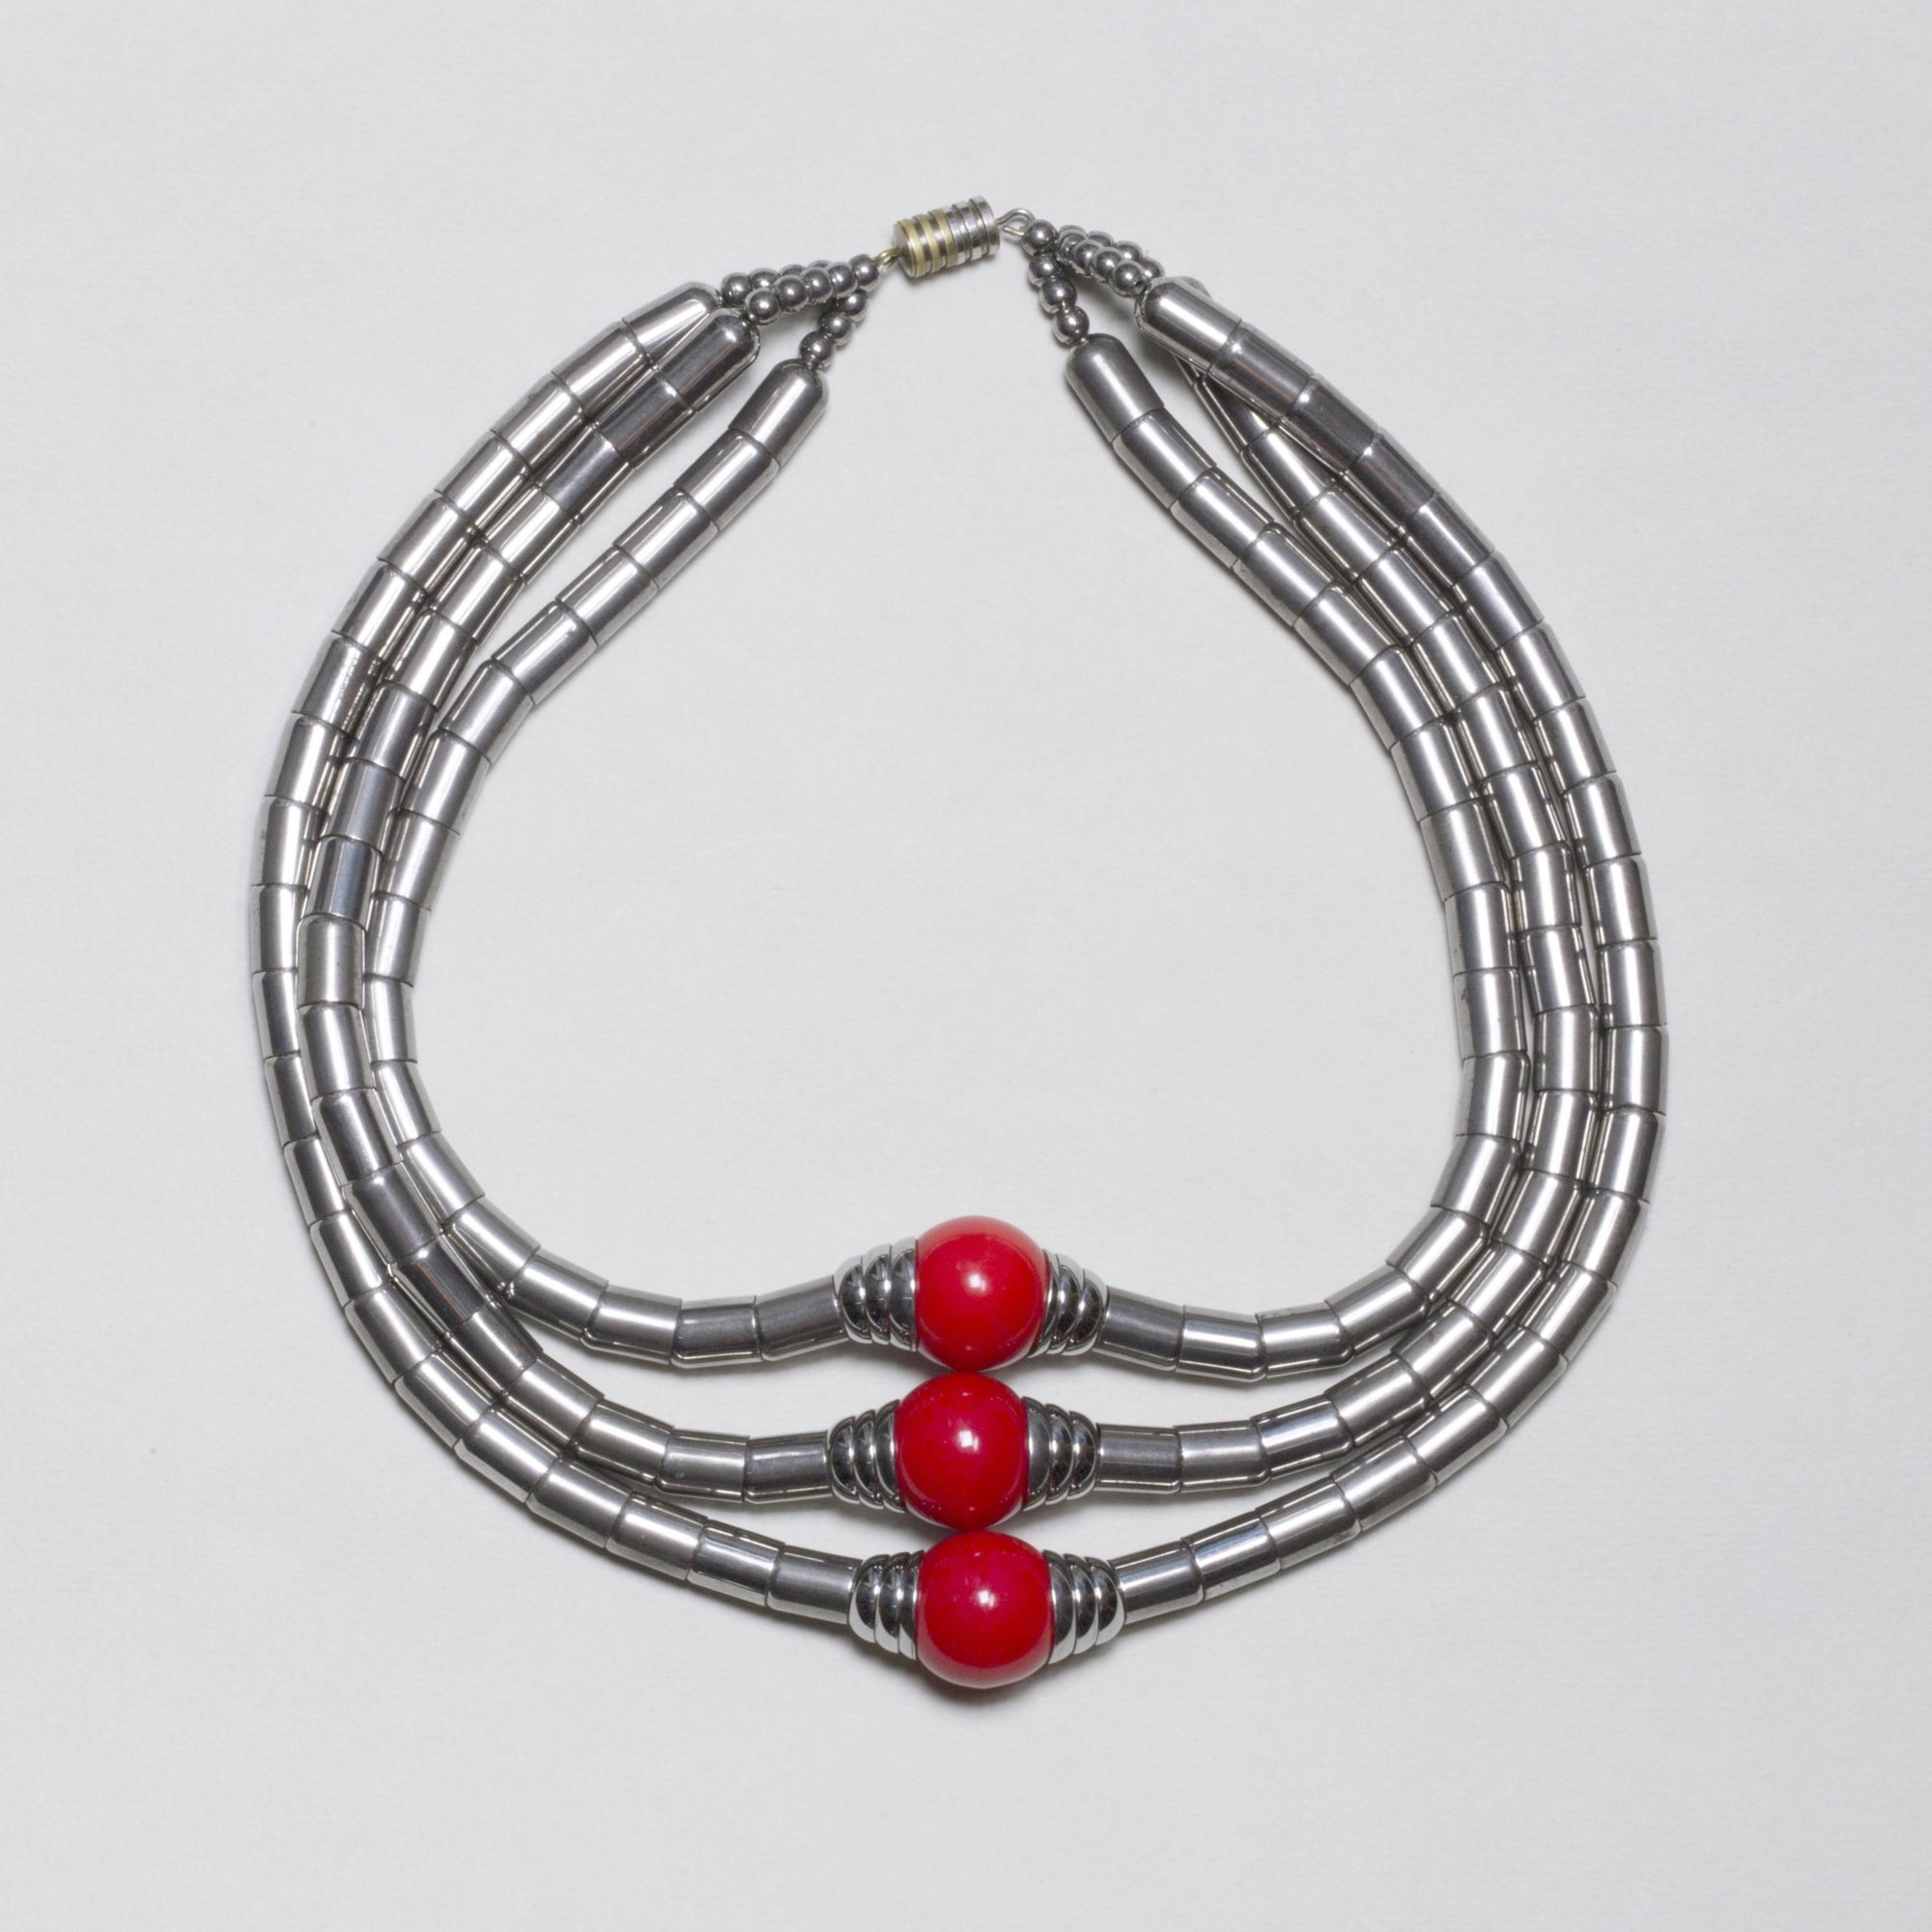 Vintage Chrome and Red Beads Art Deco Necklace